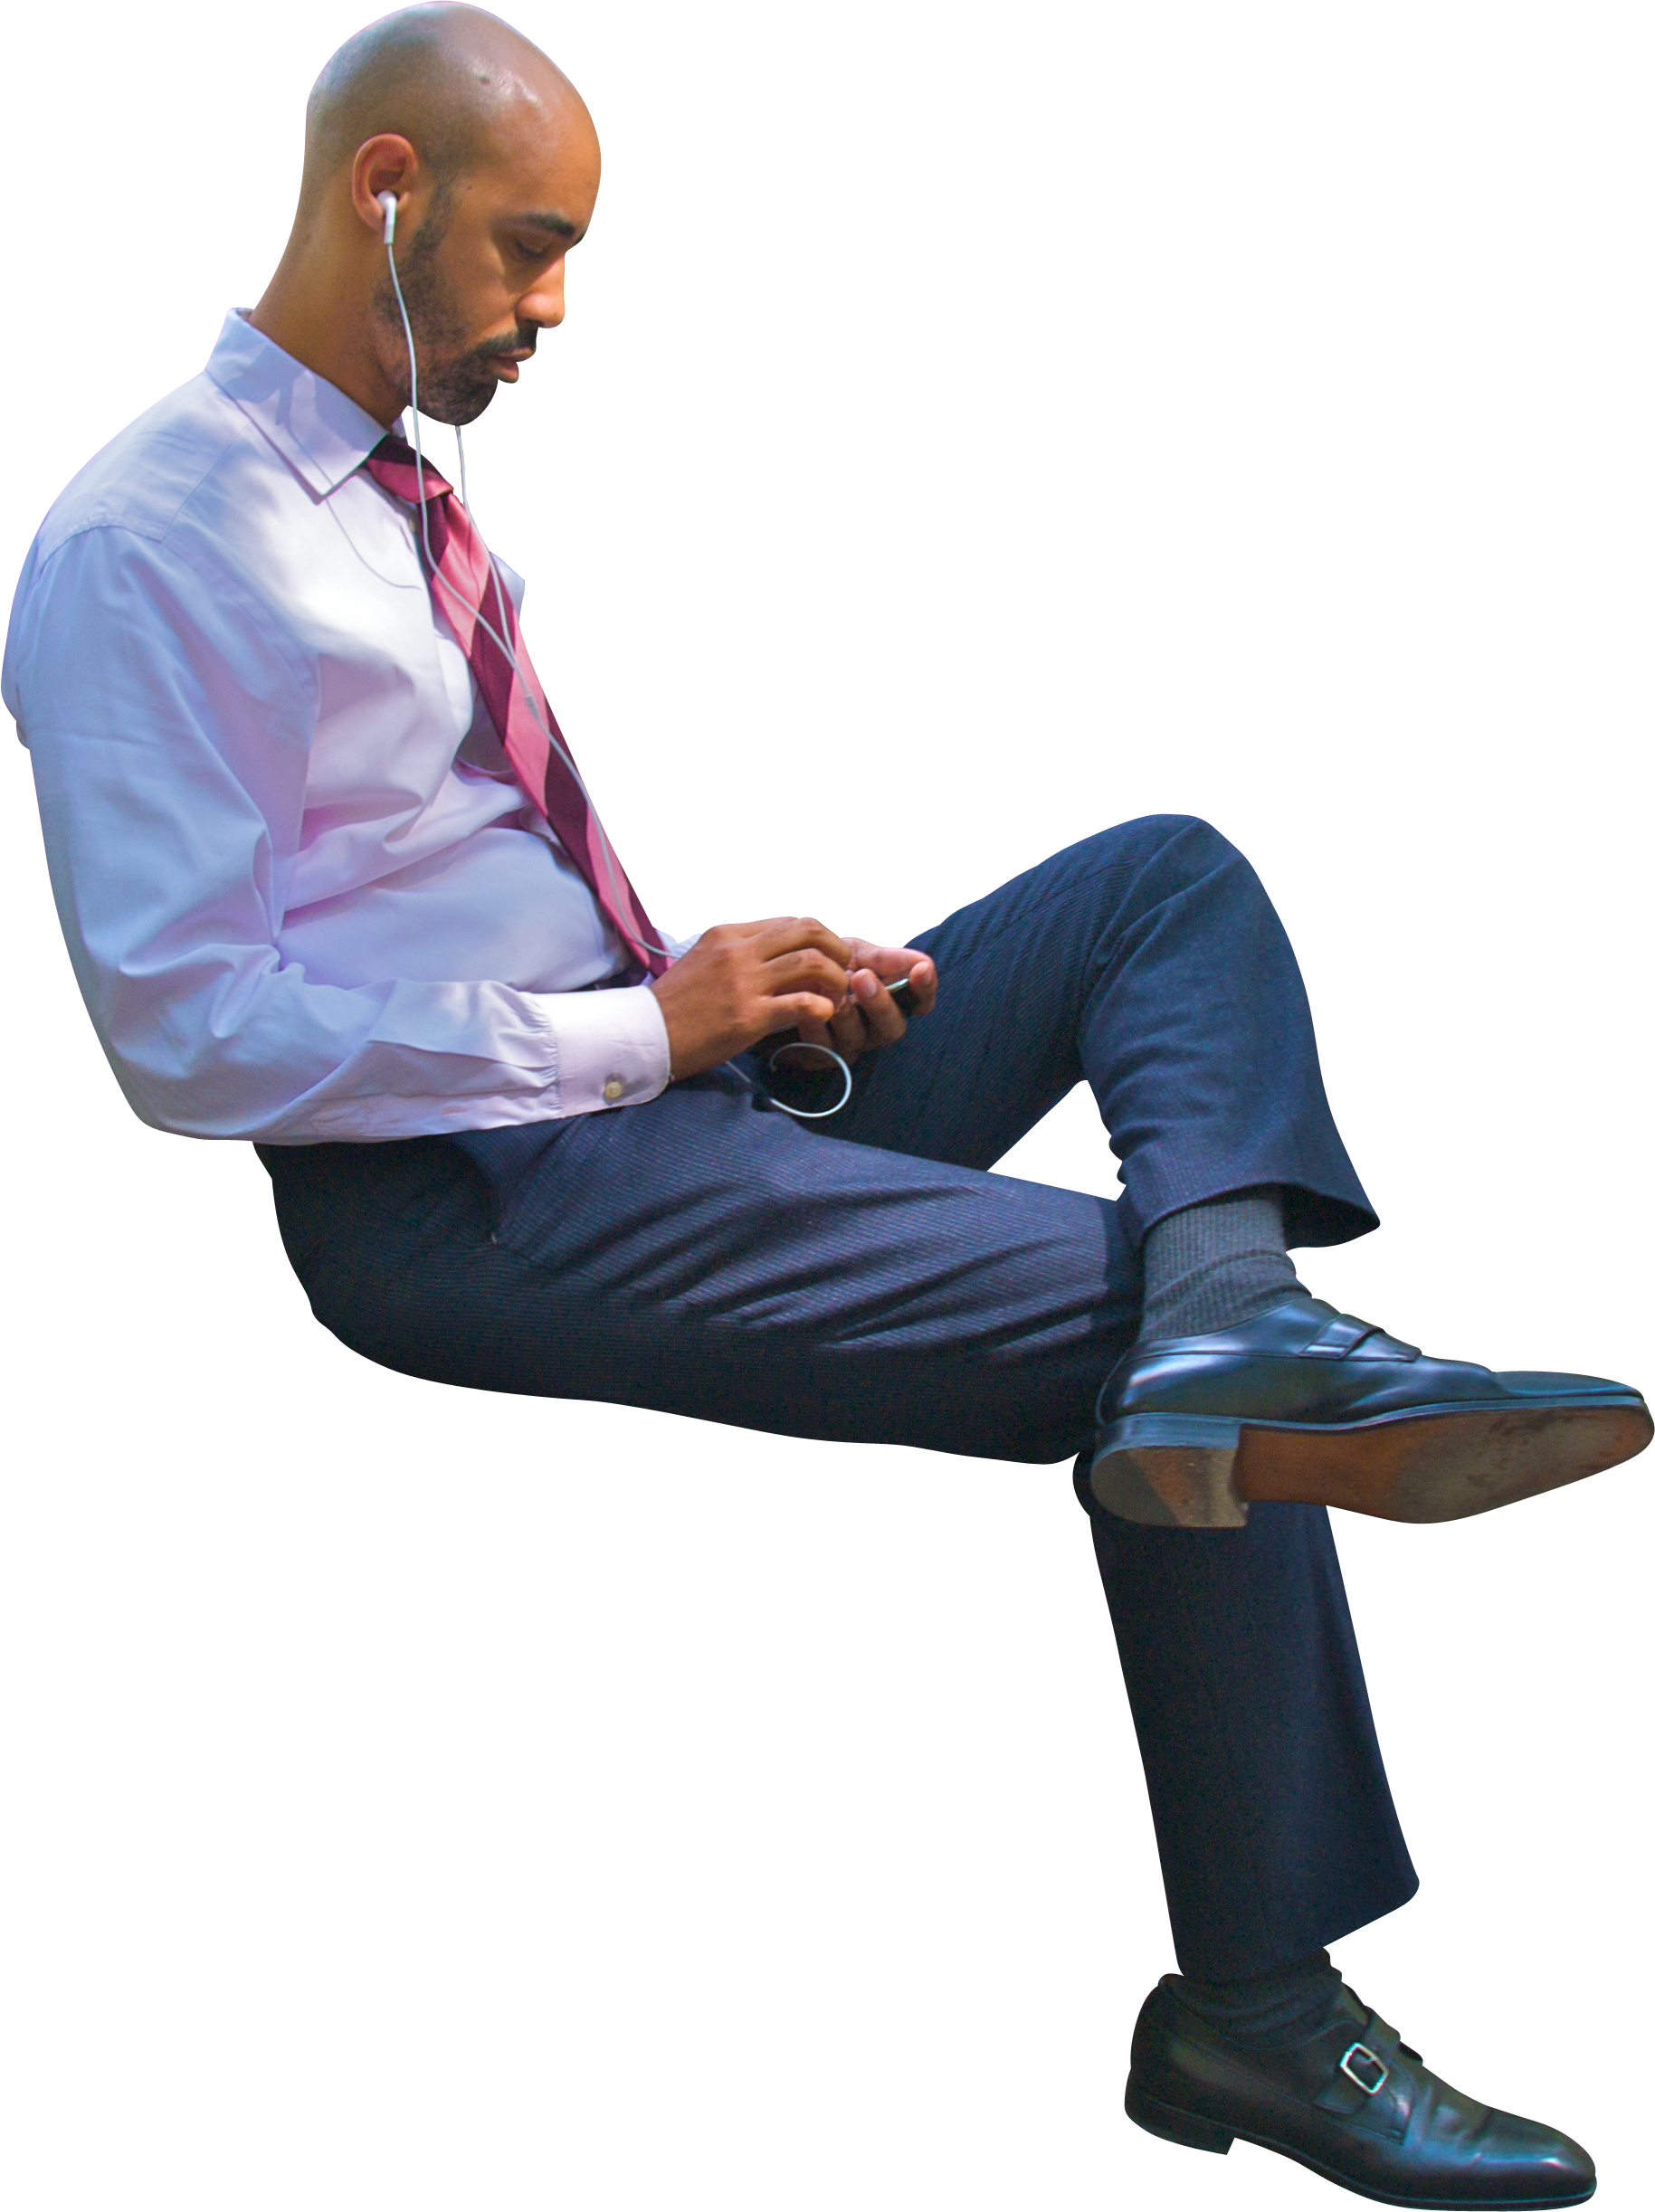 Download Sitting Man PNG Image for Free.